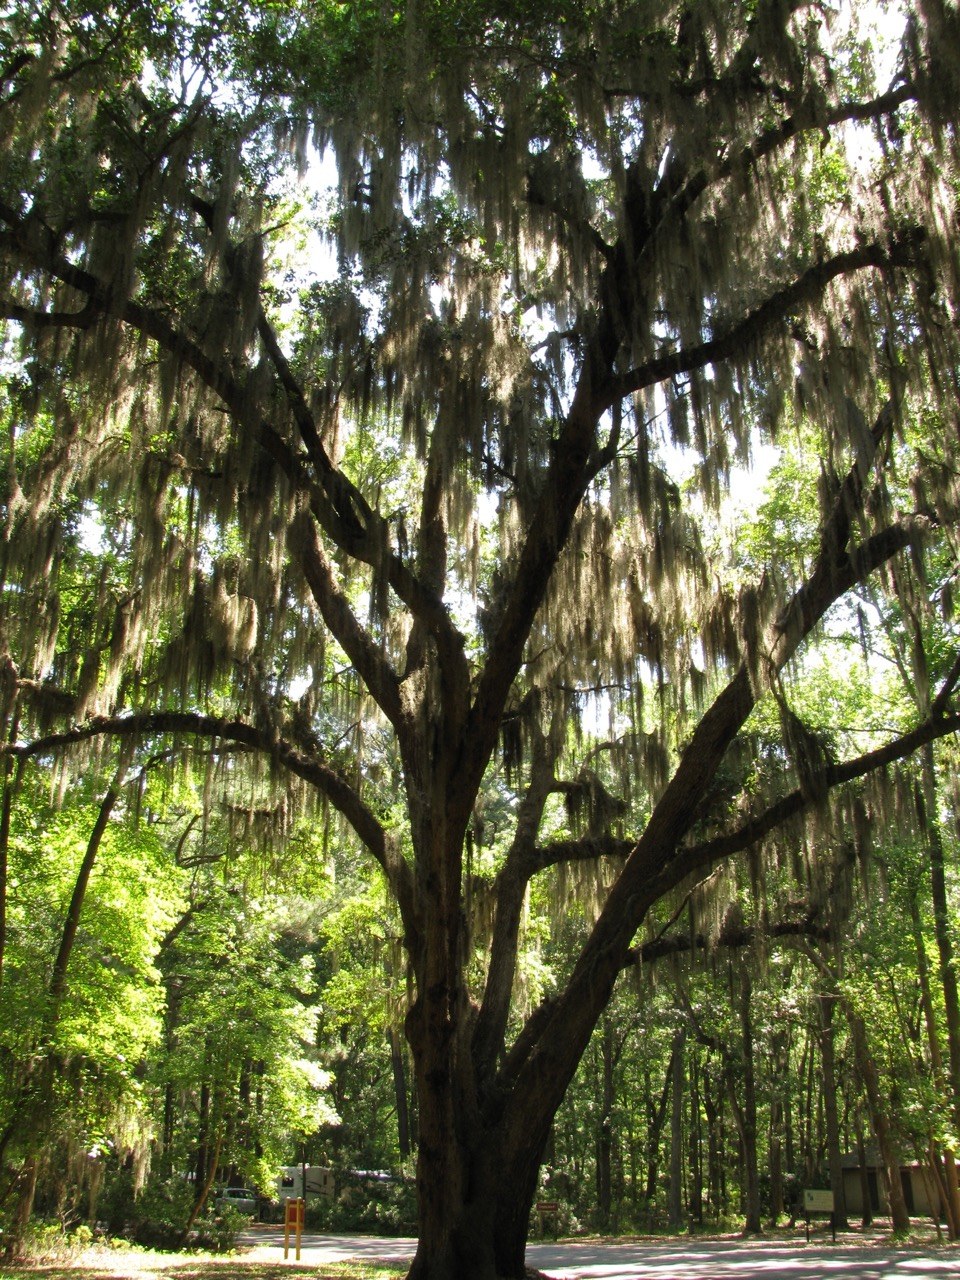 The Scientific Name is Quercus virginiana. You will likely hear them called Live Oak. This picture shows the Wide spreading limbs draped in Spanish Moss of Quercus virginiana